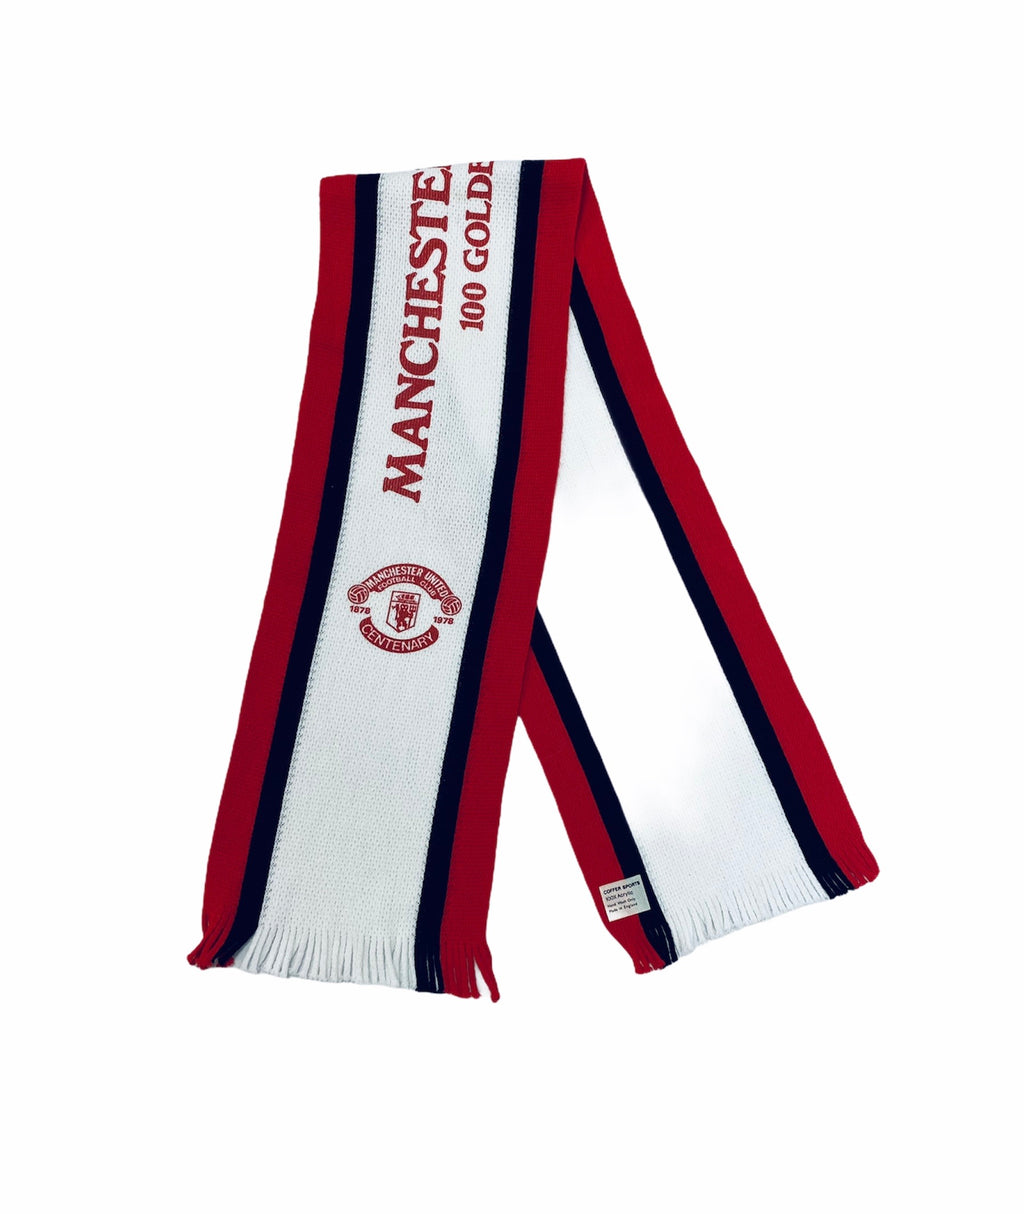 1978 Manchester United Centenary Scarf